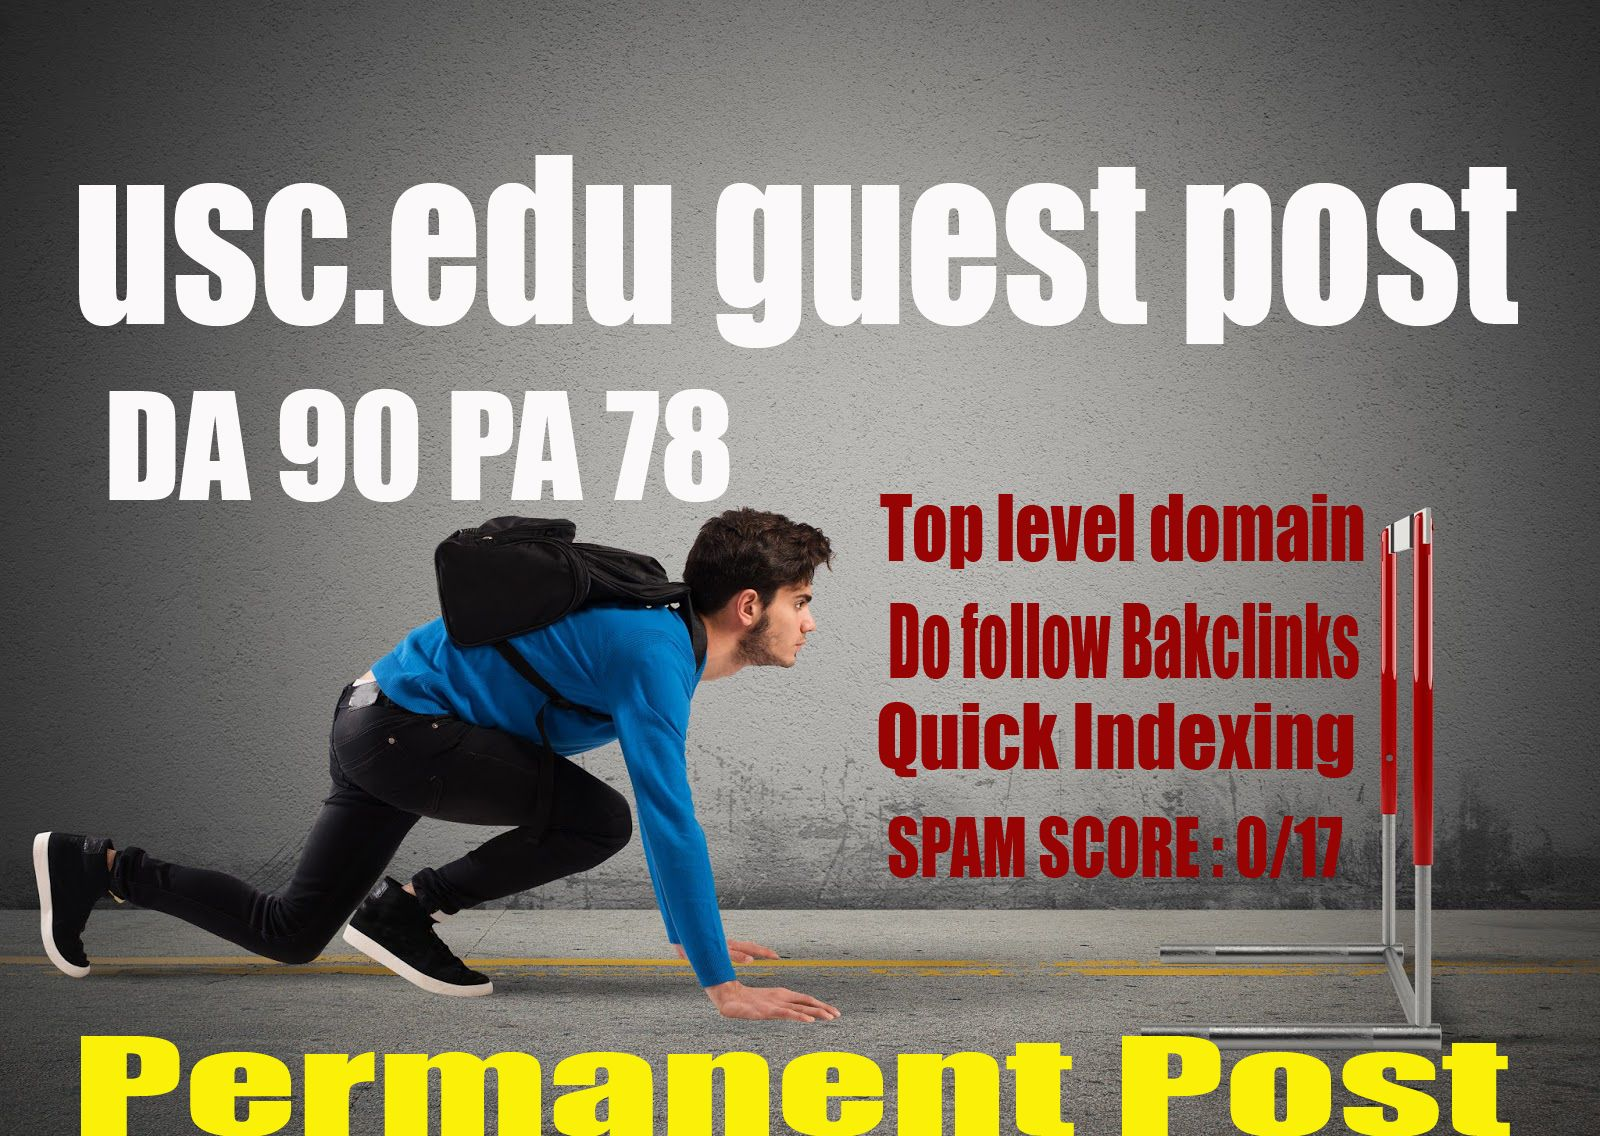 Guest Post on Usc.edu